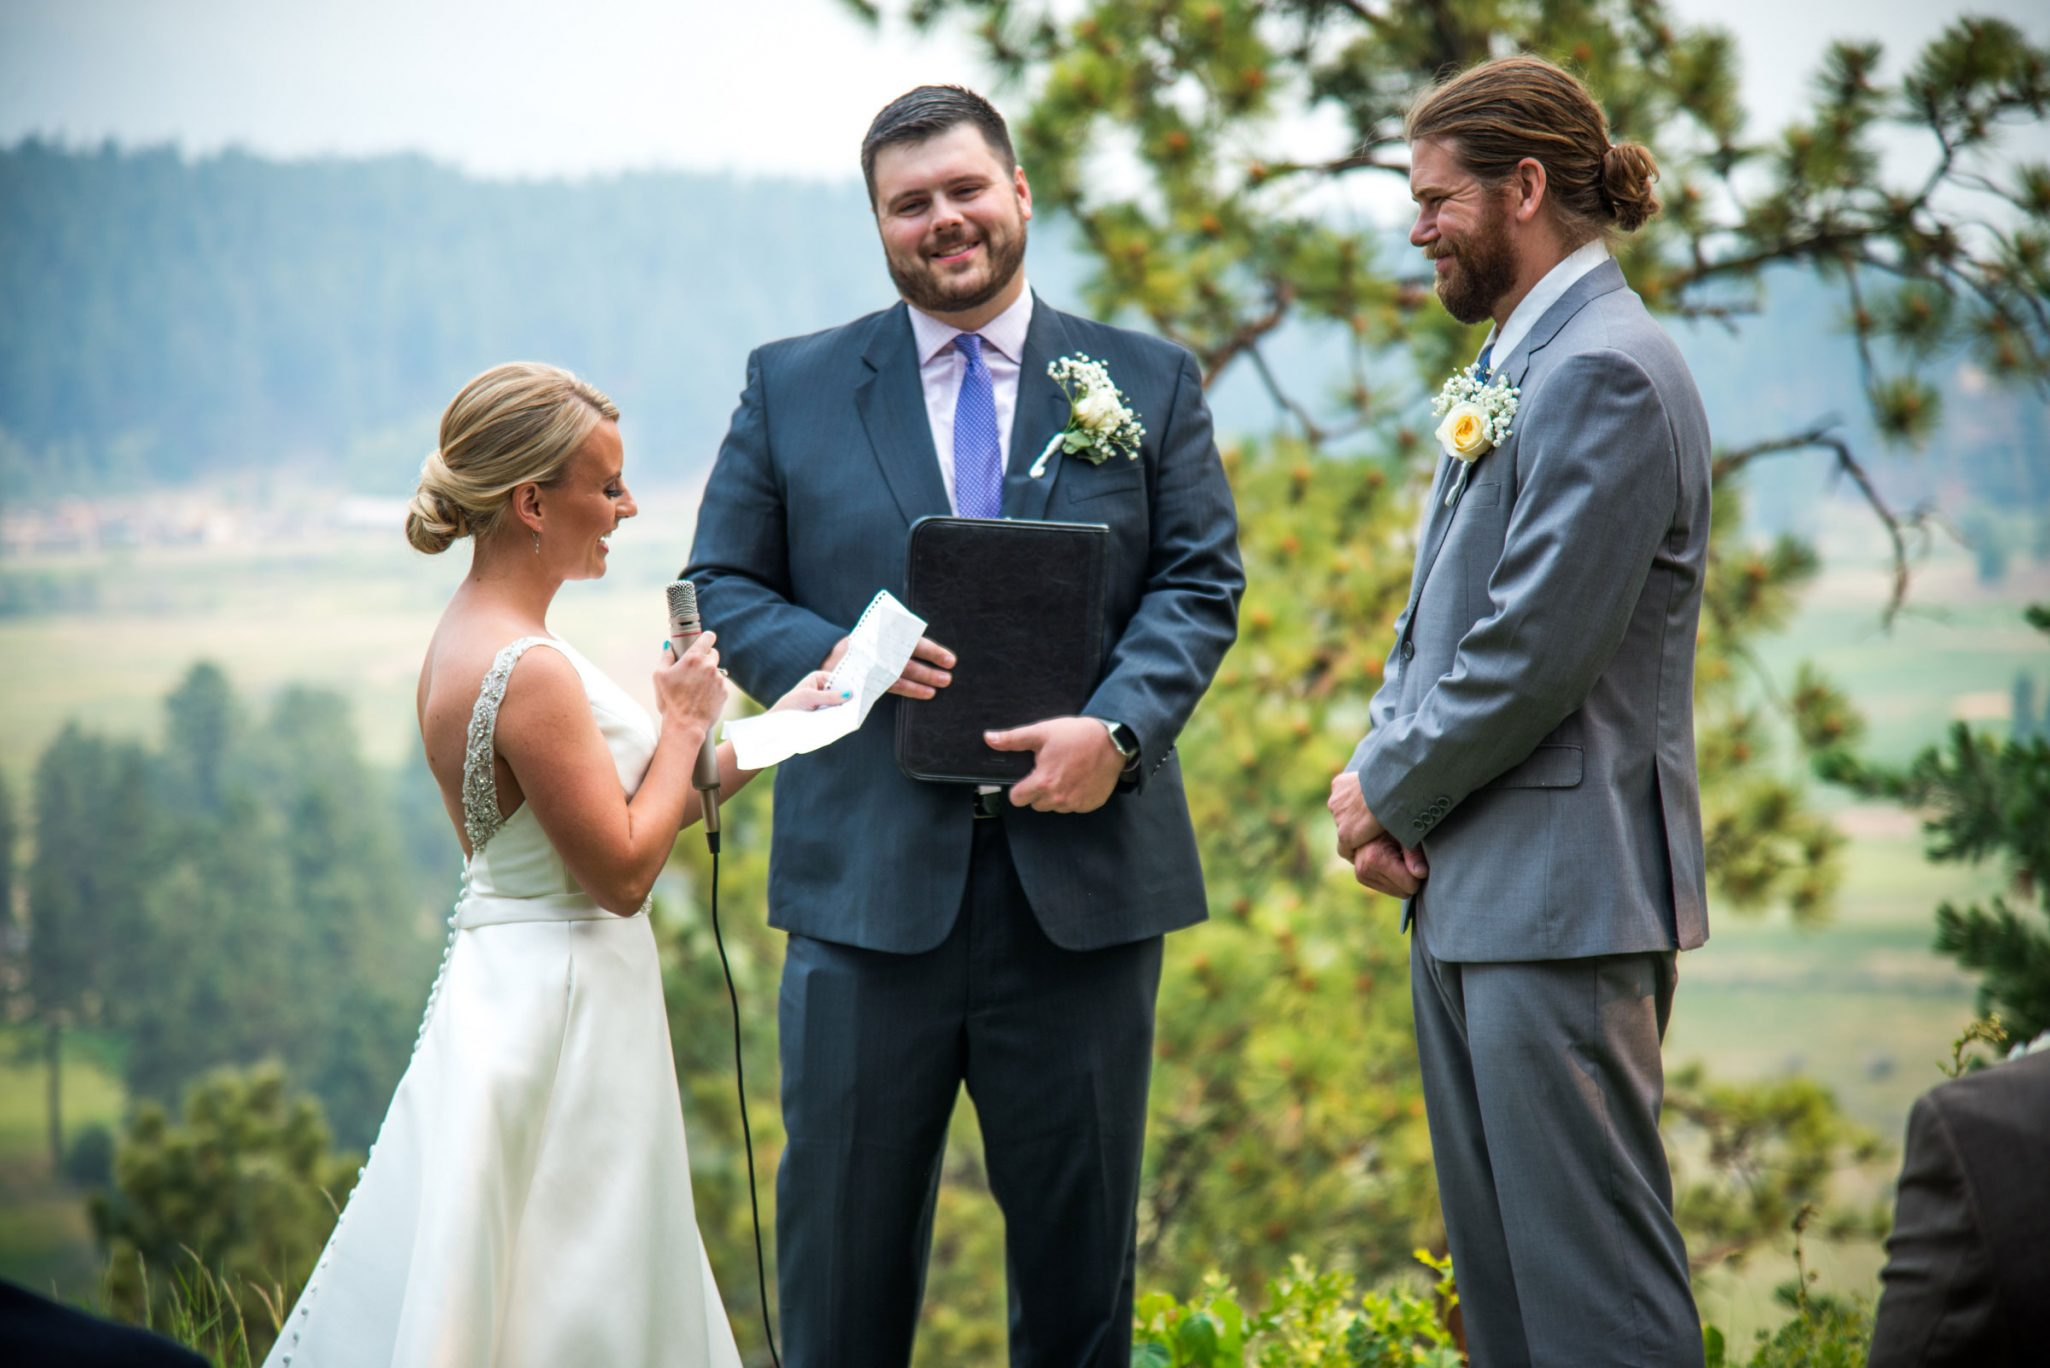 Reciting vows | Ceremony at Glacier Club, Durango Colorado